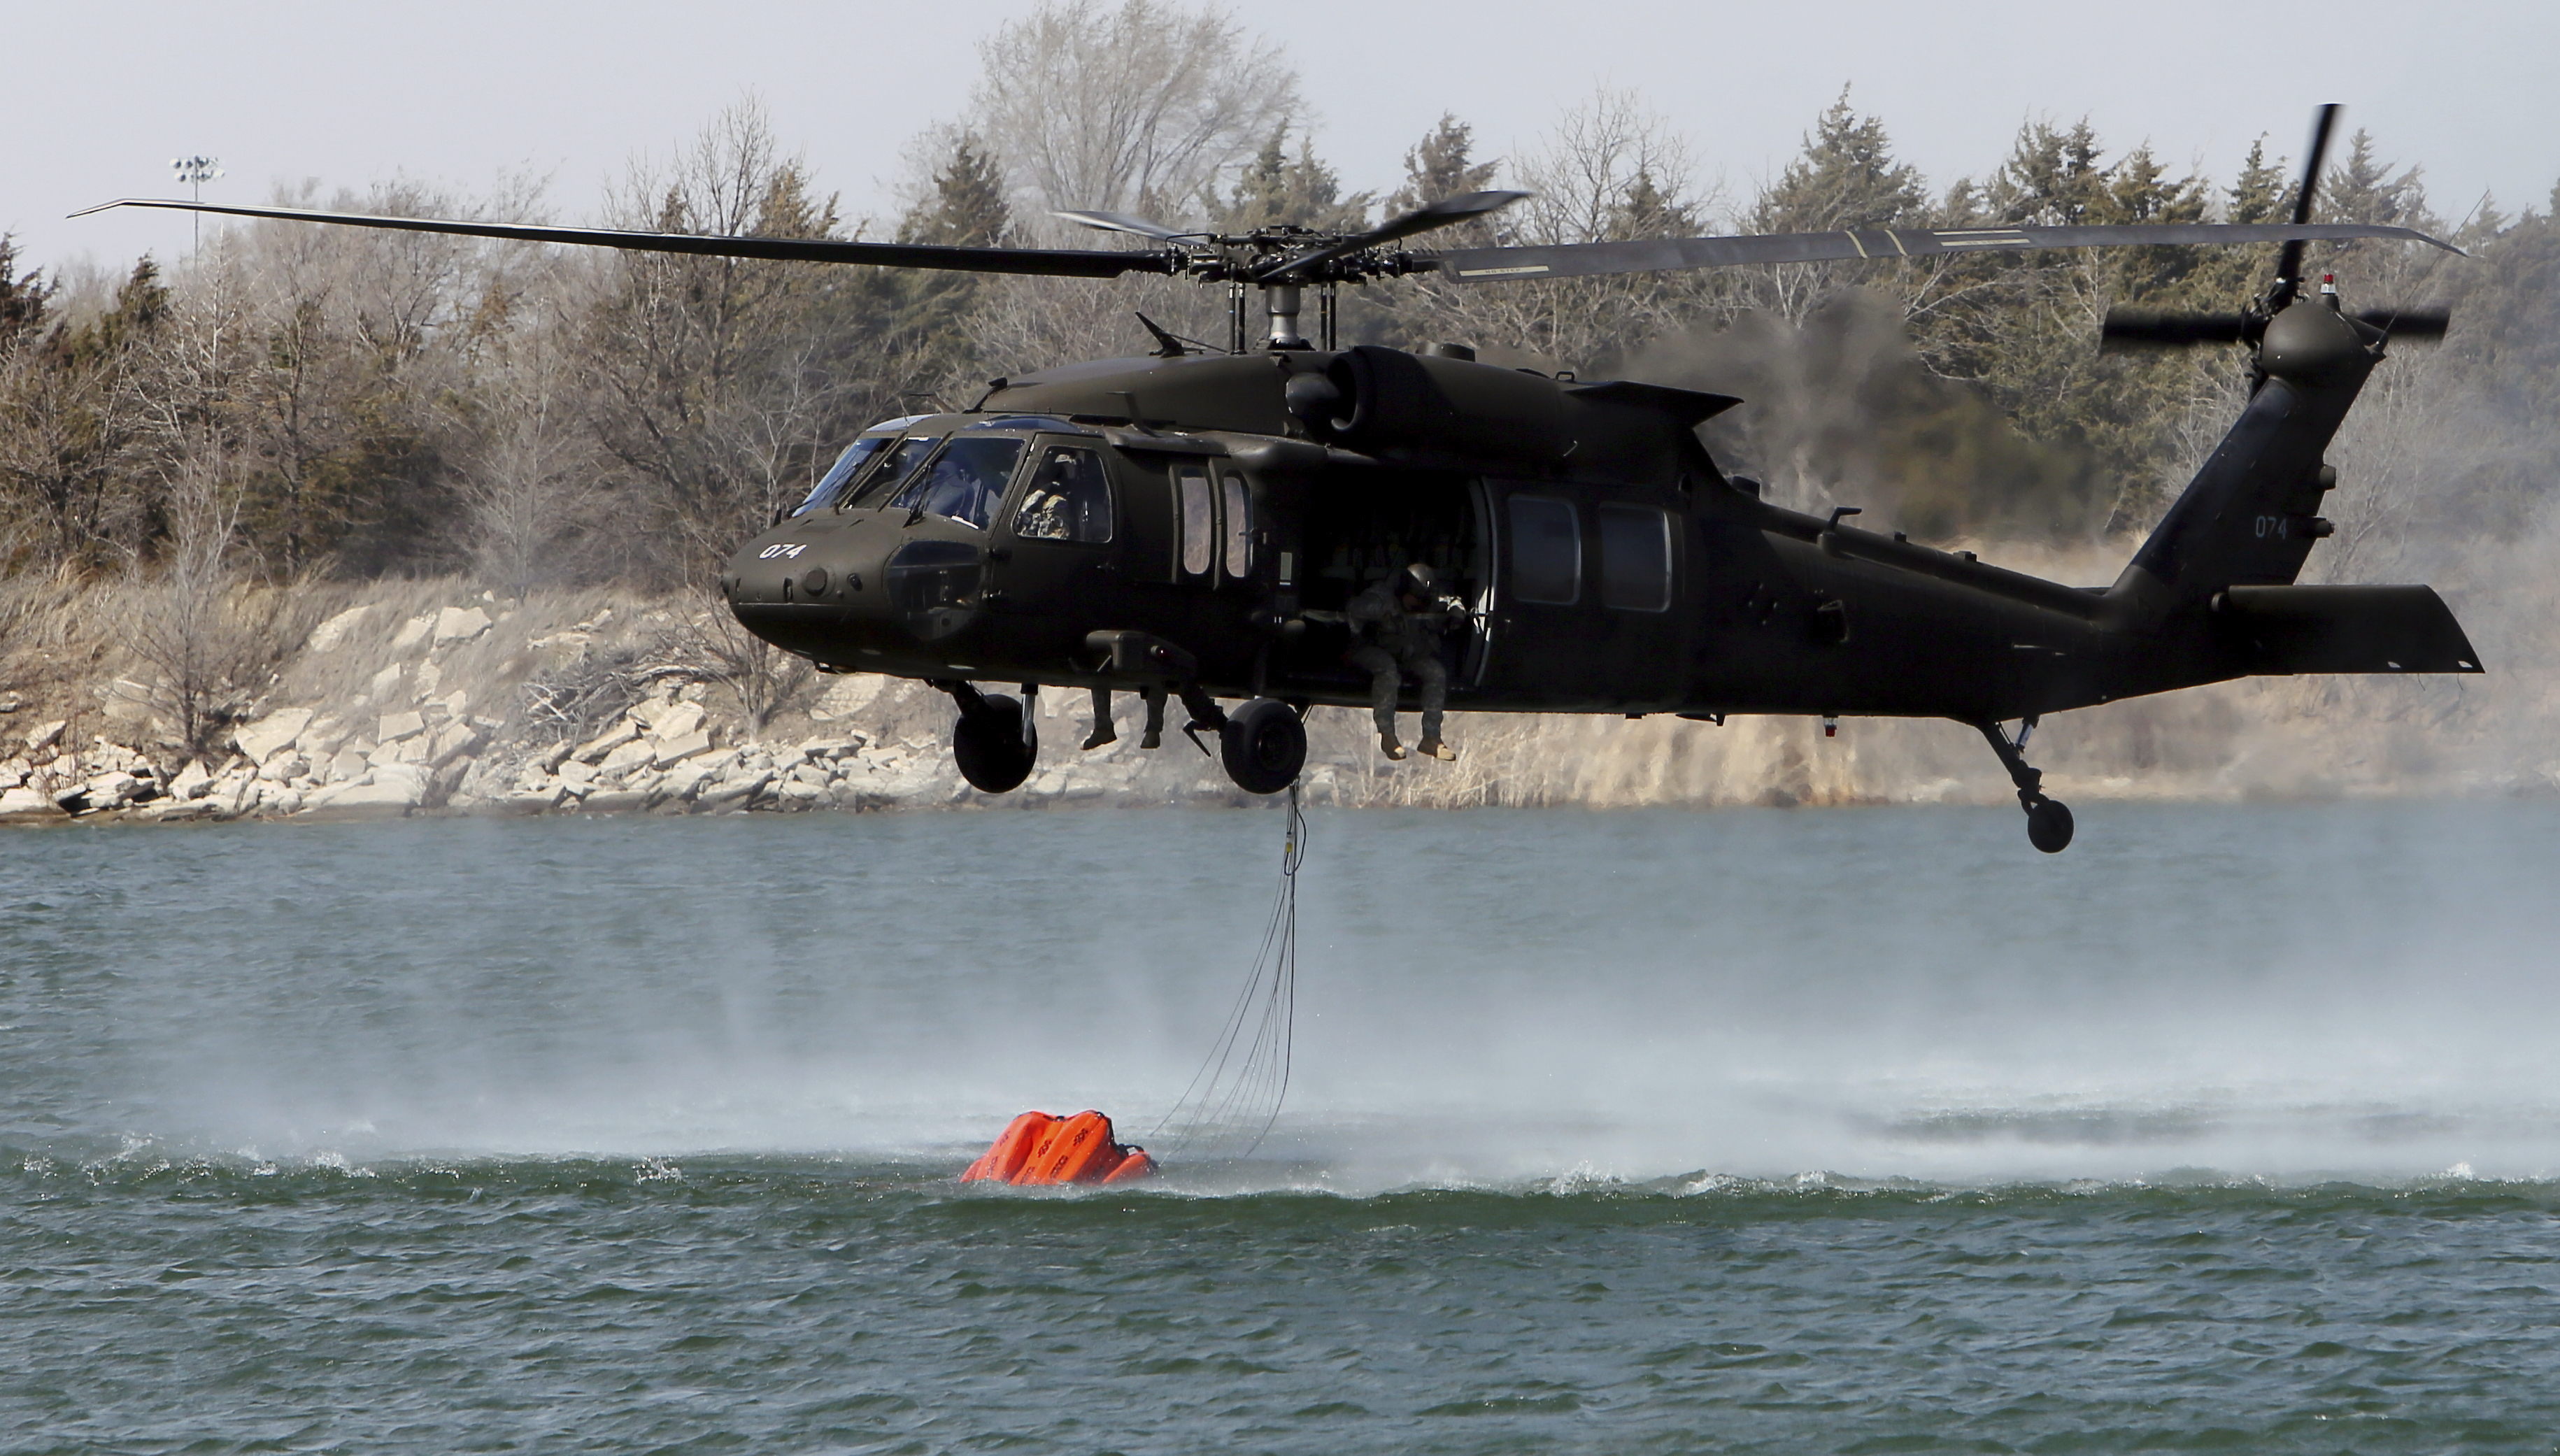 A National Guard helicopter picks up water from the Gravel & Concrete Inc. sandpit in Nickerson, Kan., on March 6, 2017. (Lindsey Bauman/The Hutchinson News via AP)